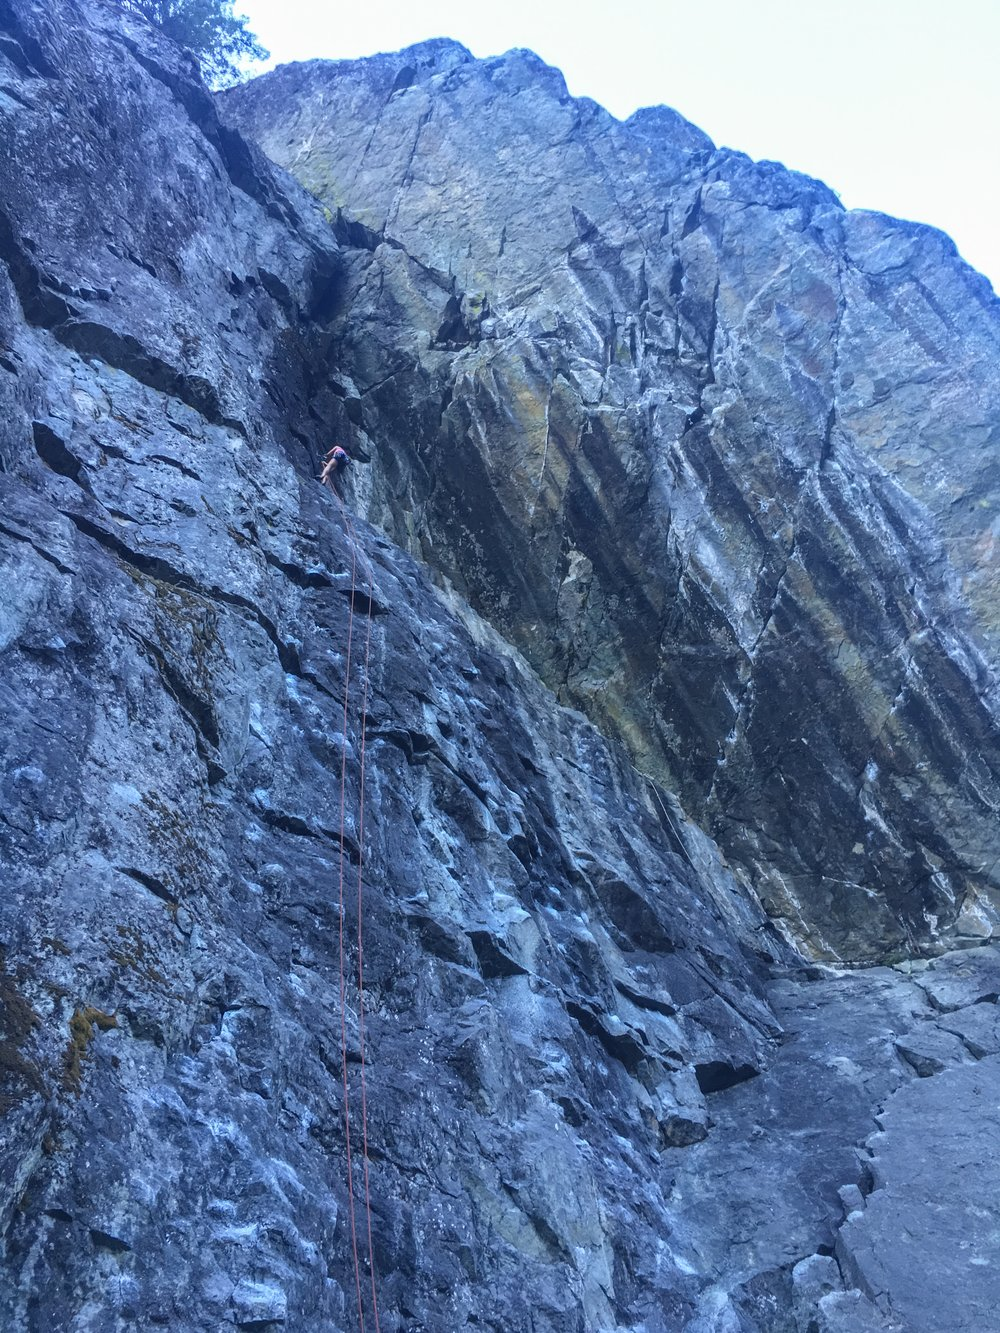 Rapping down off one of our favorite routes in Chek (Dark Don't Lie 5.11a)